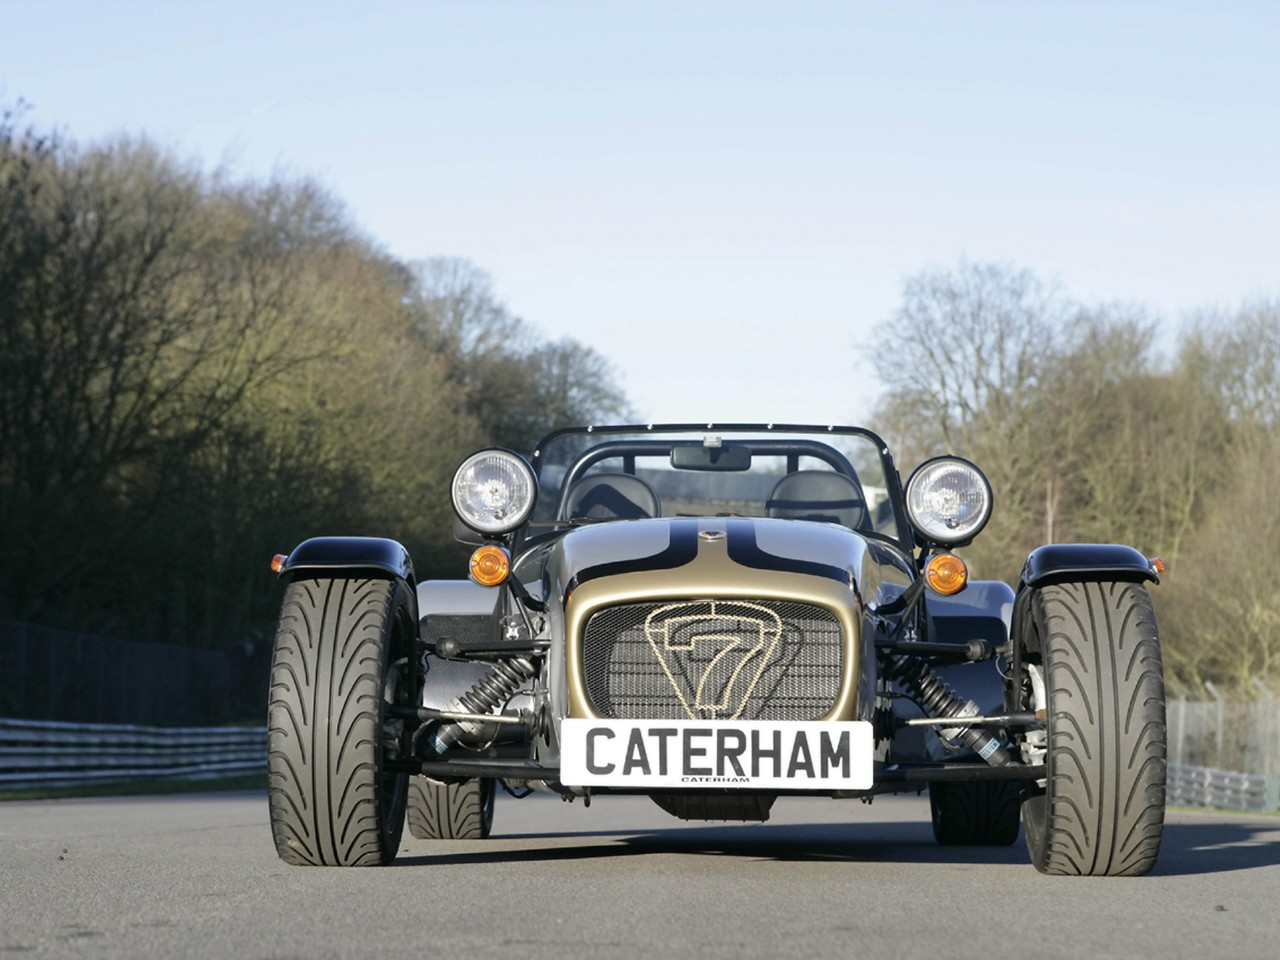 2007 Caterham Seven Roadsport Wallpaper And Image Gallery